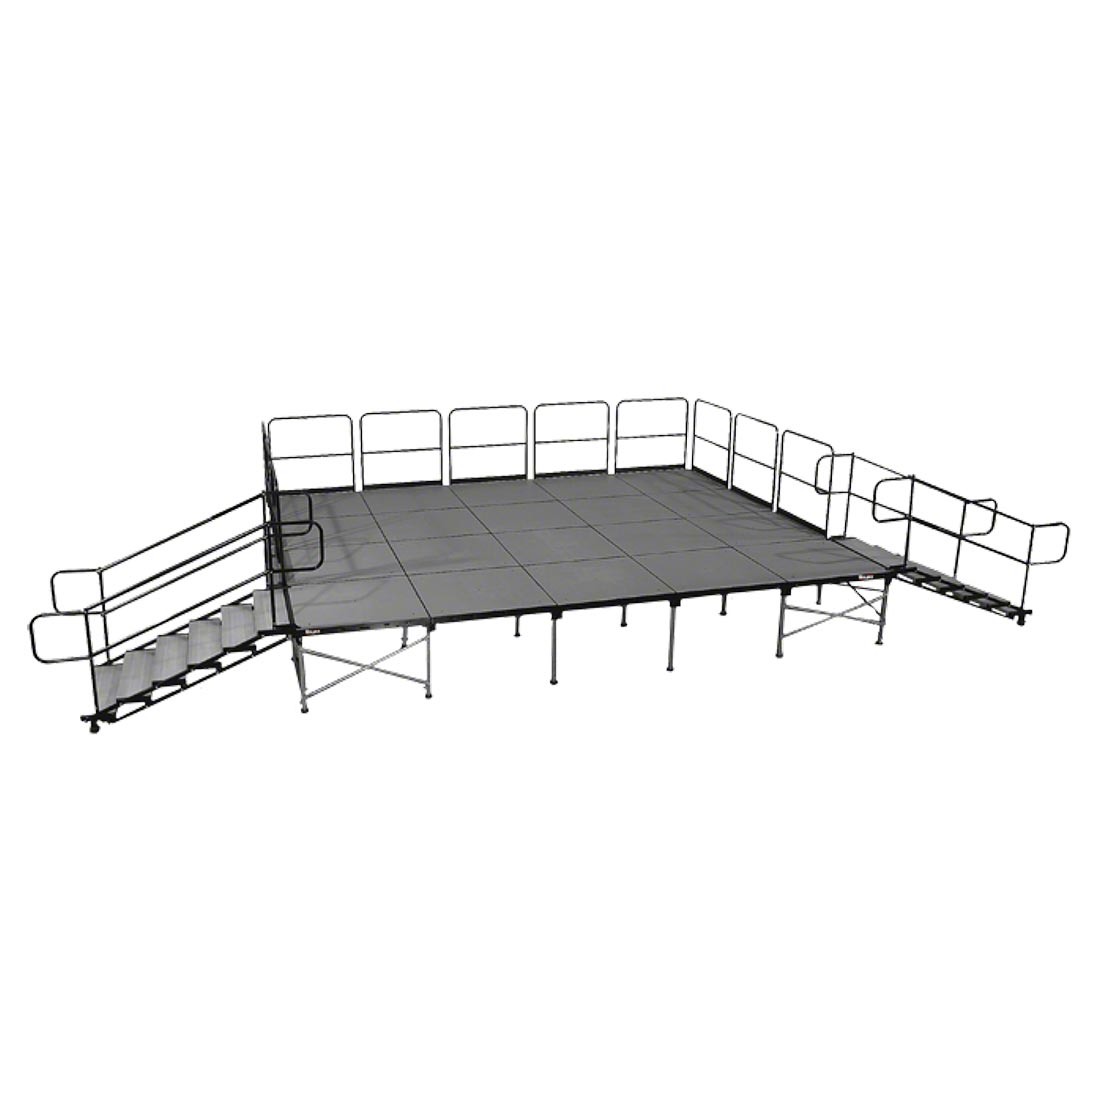 Biljax ST8100 Steel Frame Stages